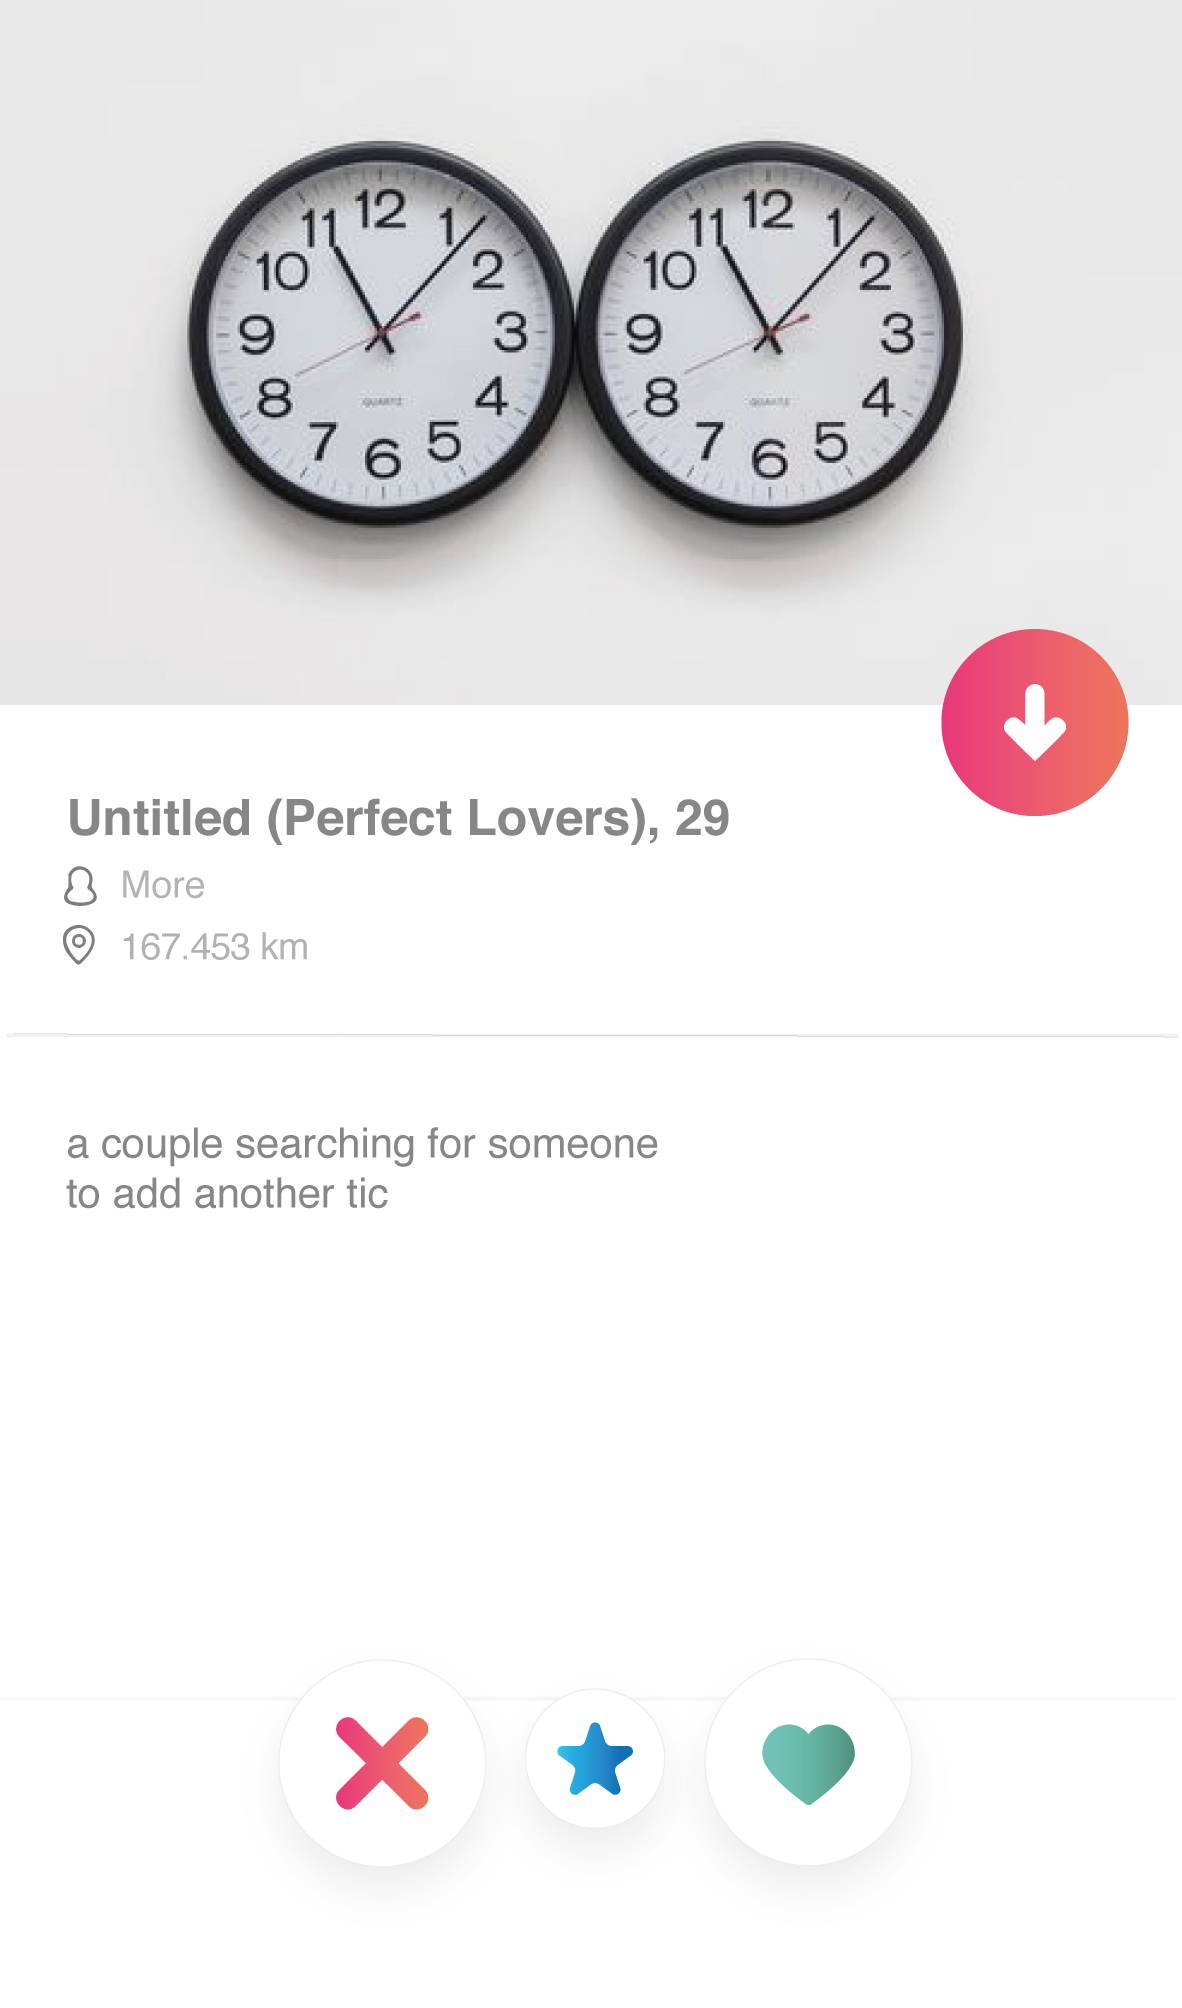 Perfect lovers